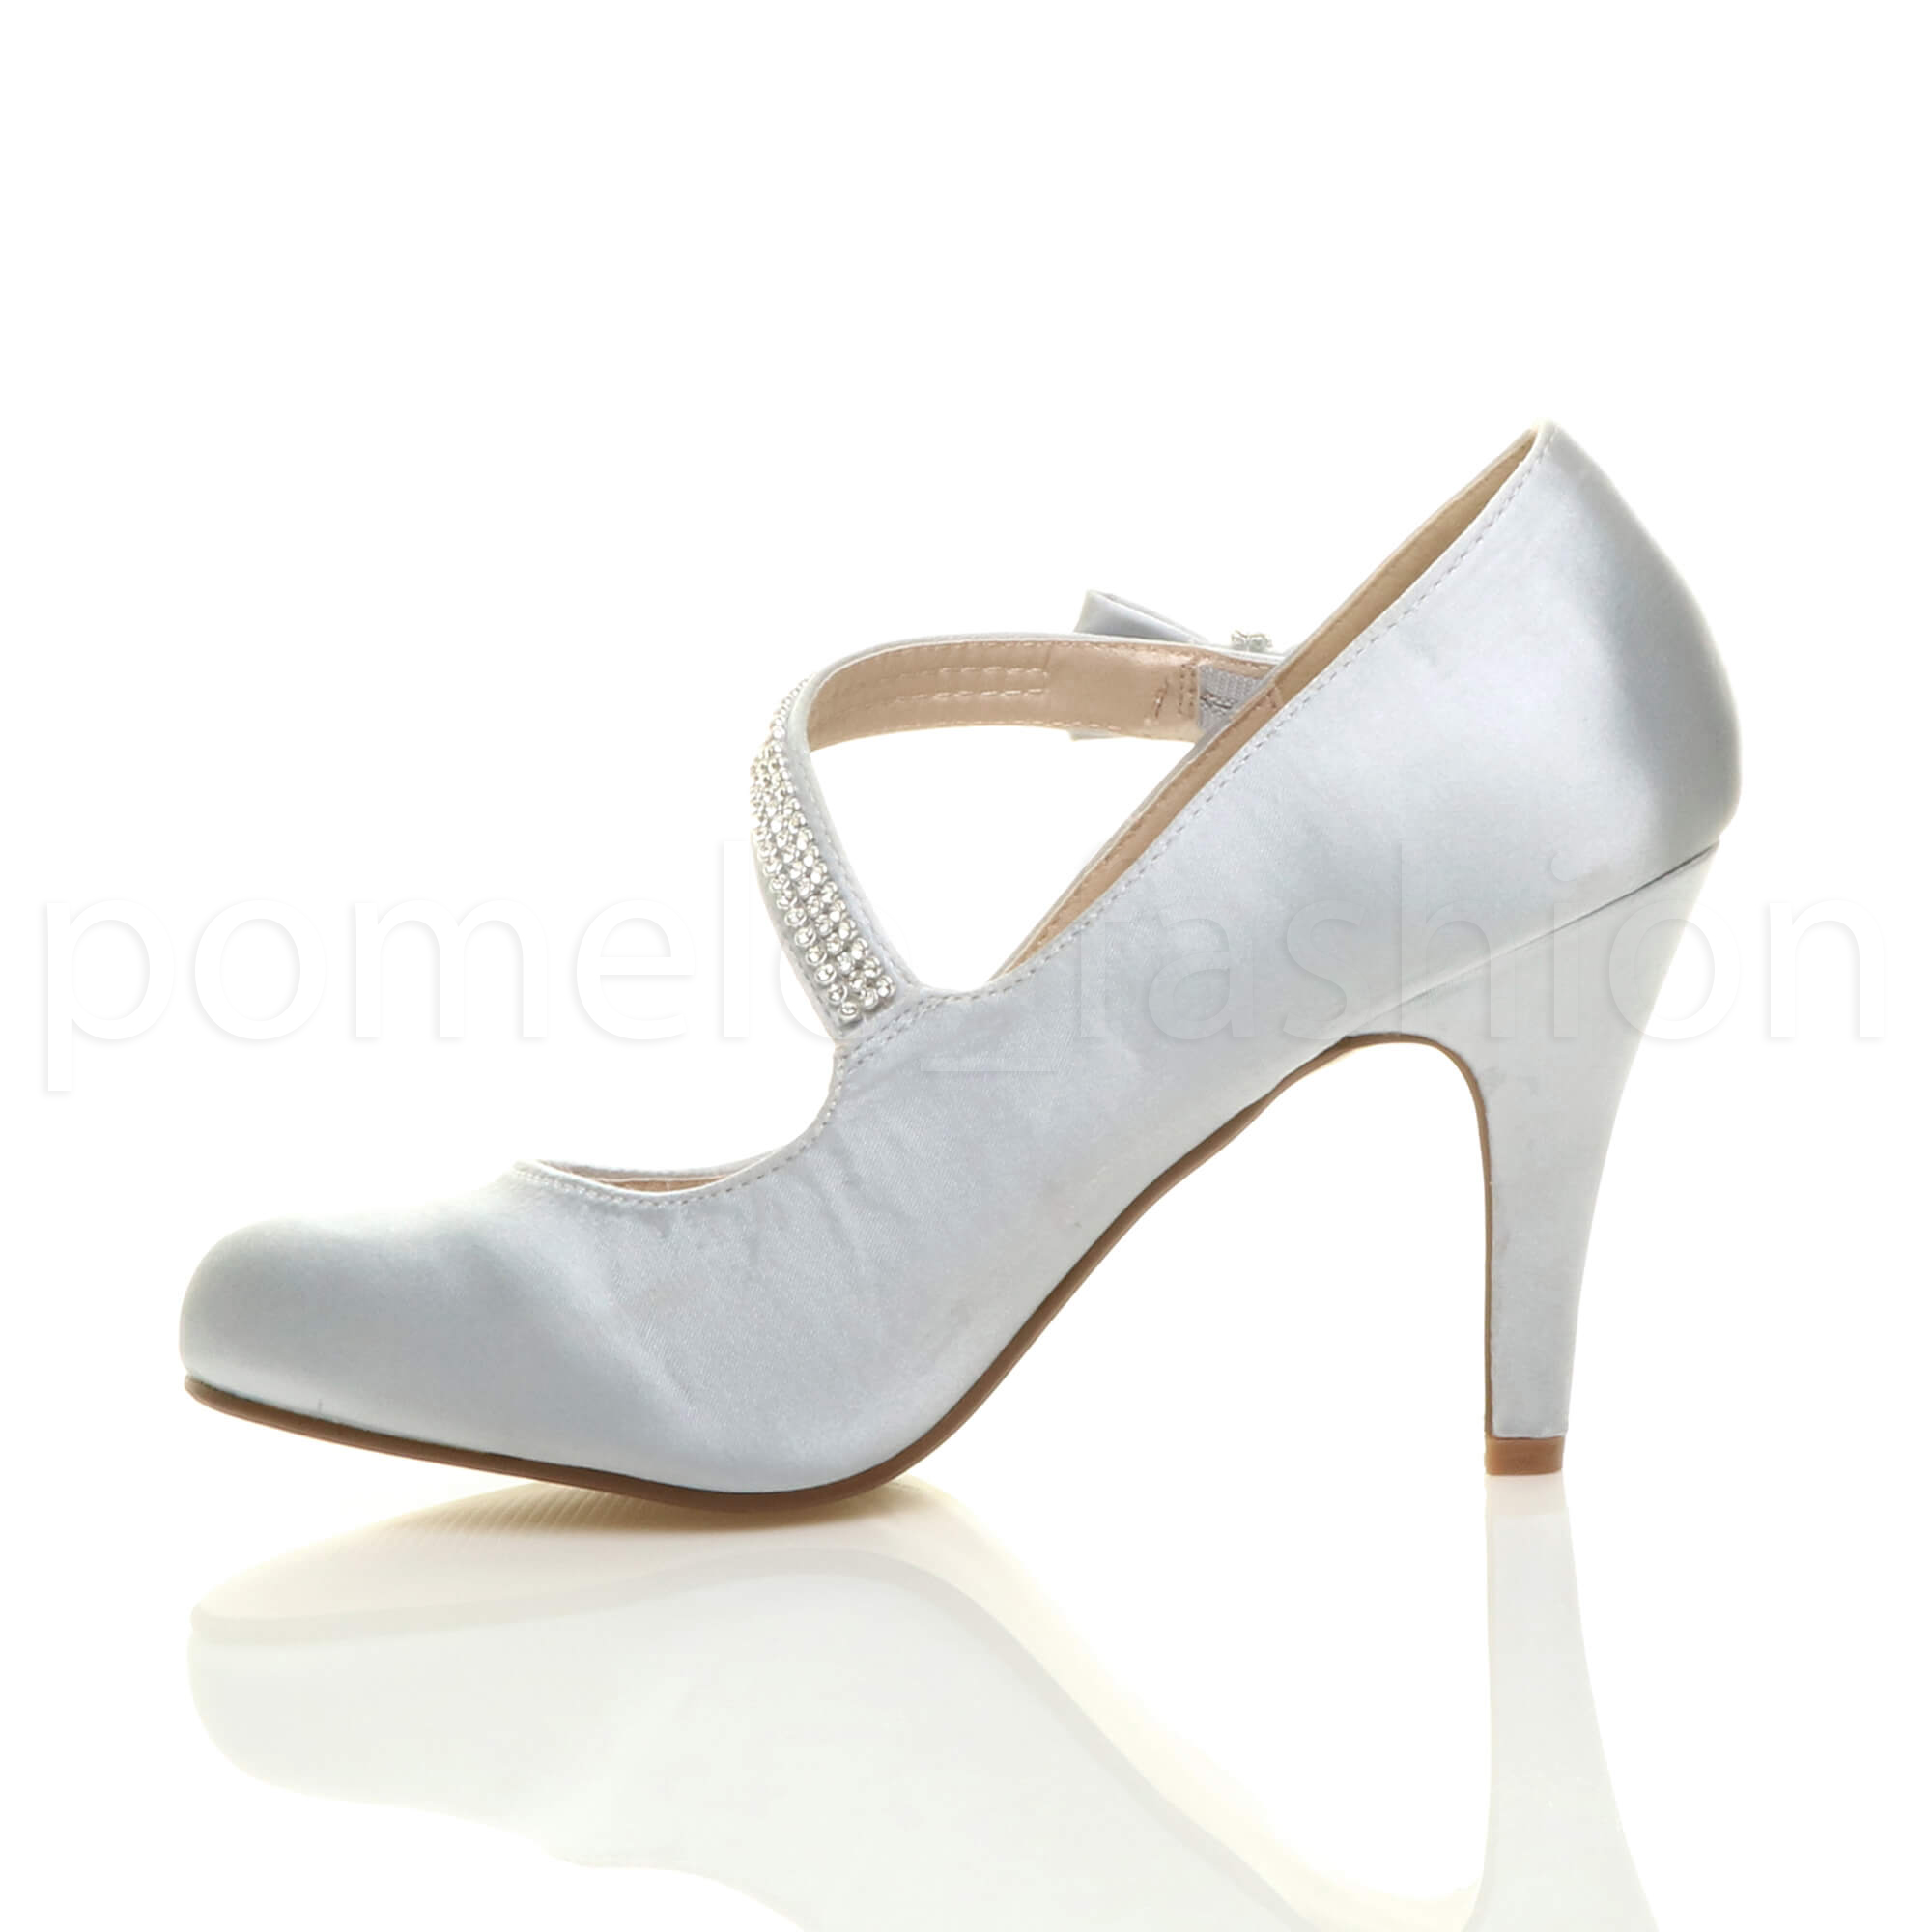 WOMENS-LADIES-BRIDAL-WEDDING-PROM-PARTY-HIGH-HEEL-CLASSIC-PUMPS-SHOES-SIZE